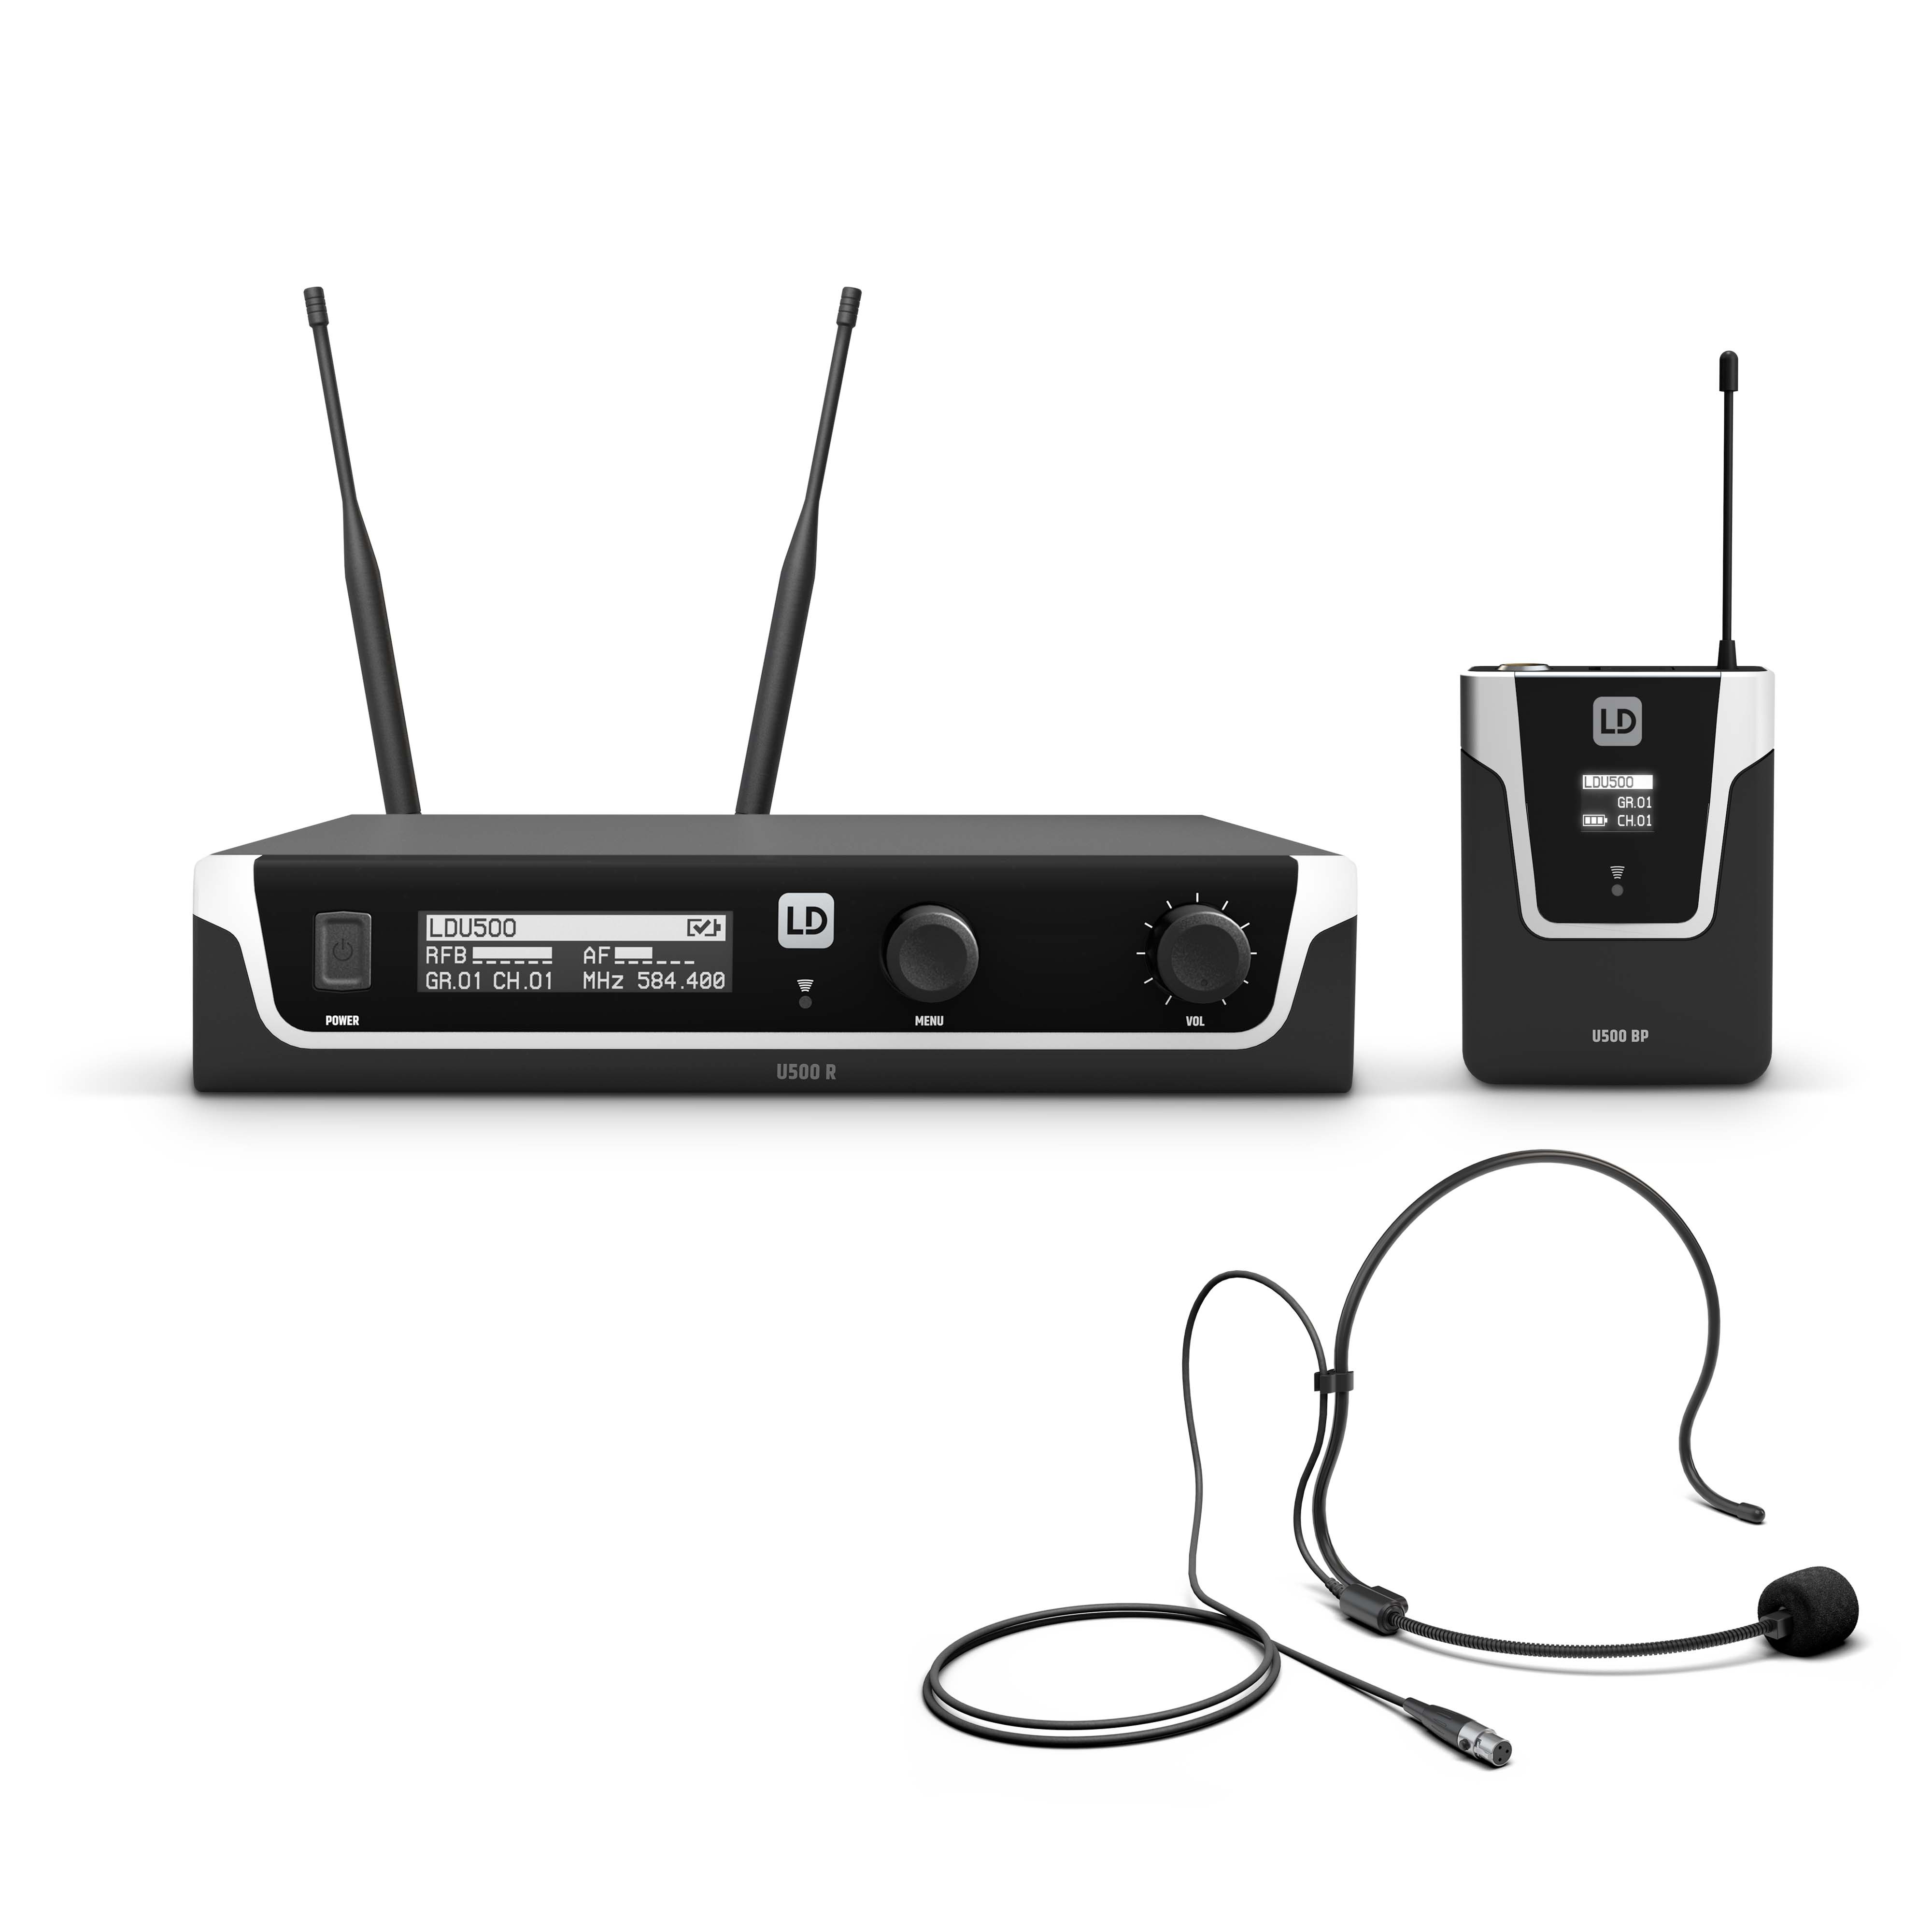 U506 UK BPH Wireless Microphone System with Bodypack and Headset